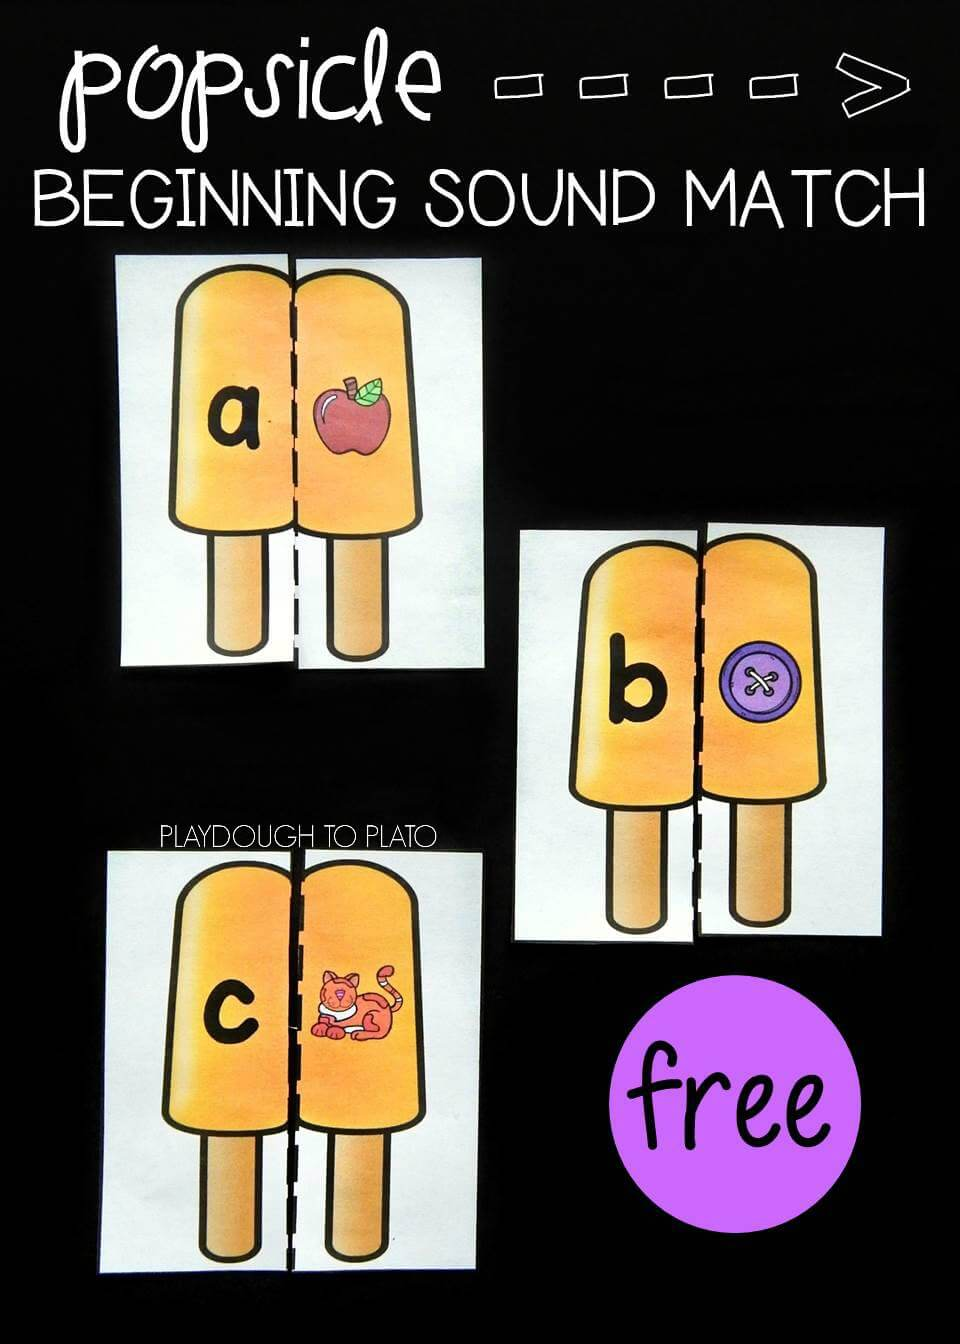 Popsicle Beginning Sound Match